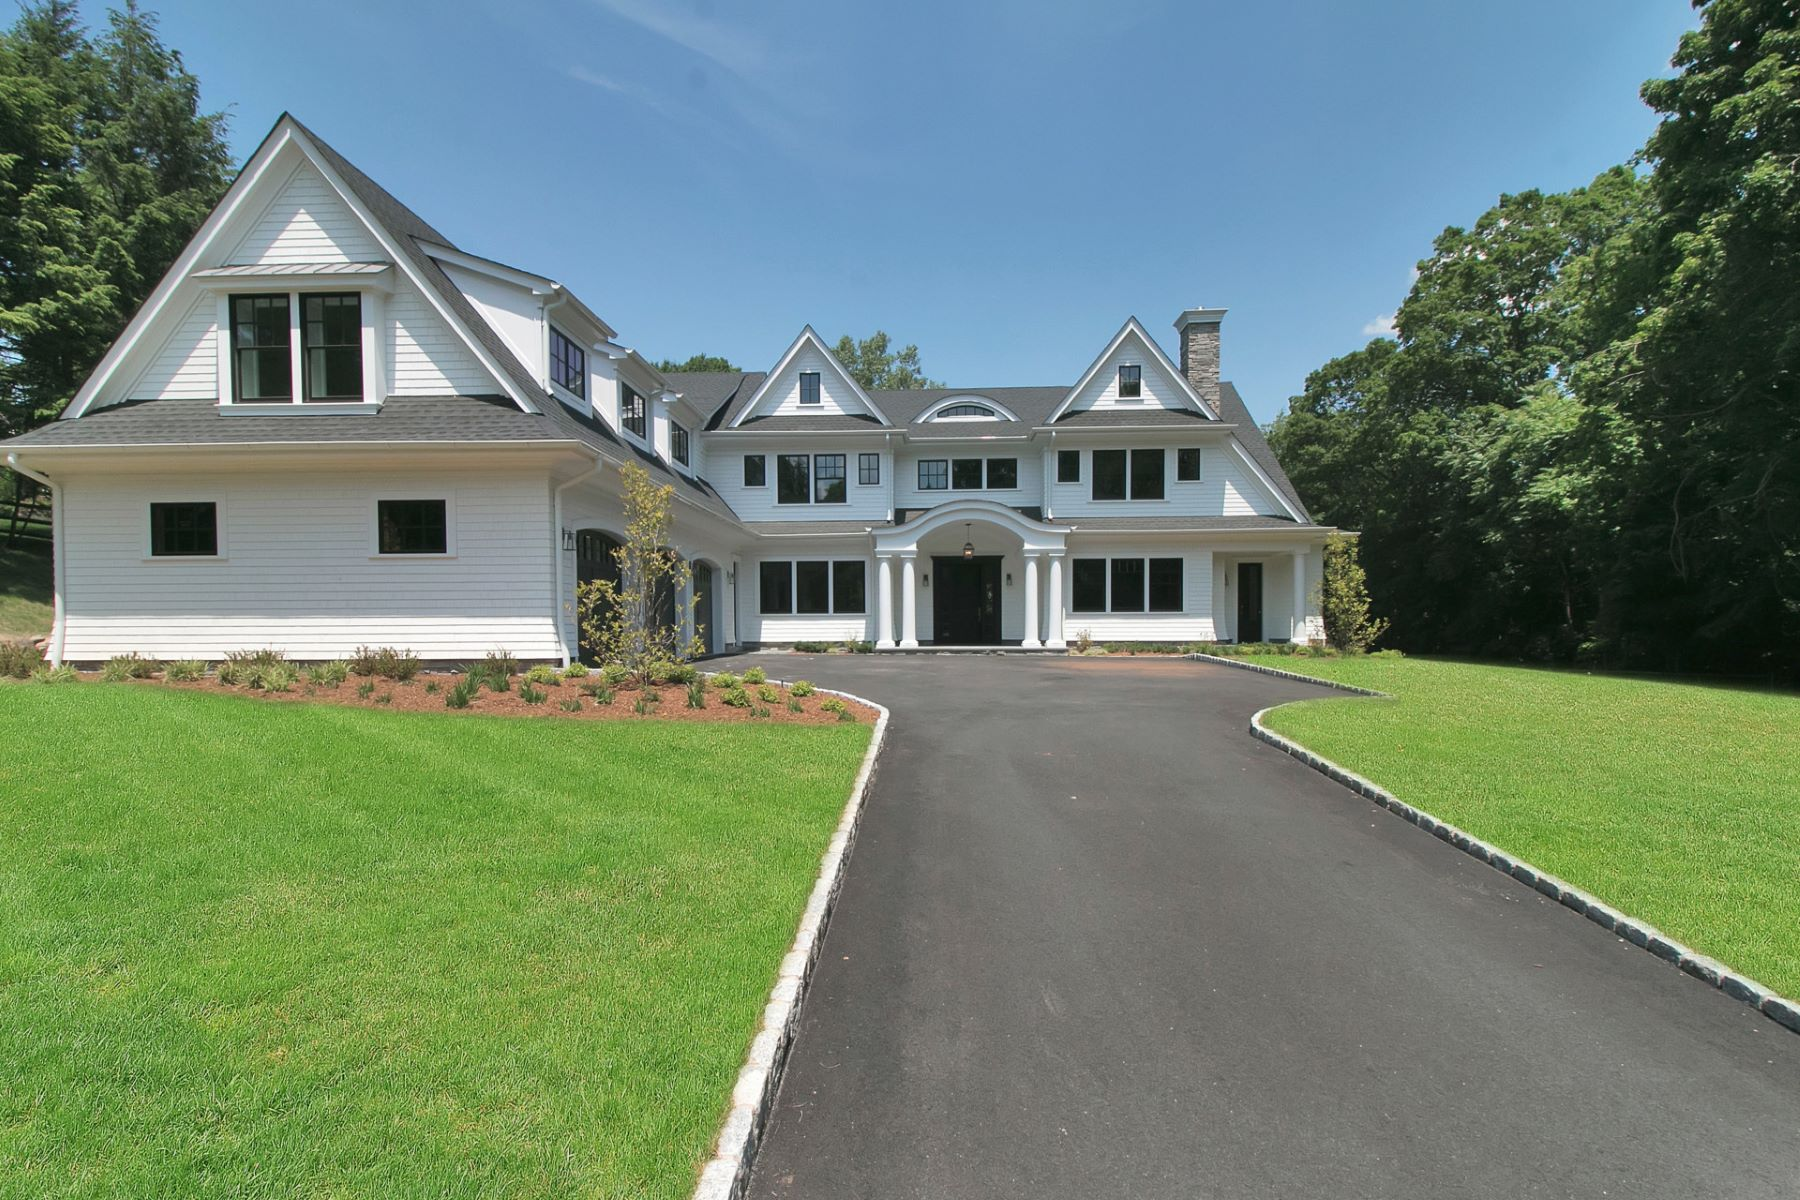 Single Family Home for Sale at New Construction 49 Stone Ledge Rd Upper Saddle River, New Jersey, 07458 United States